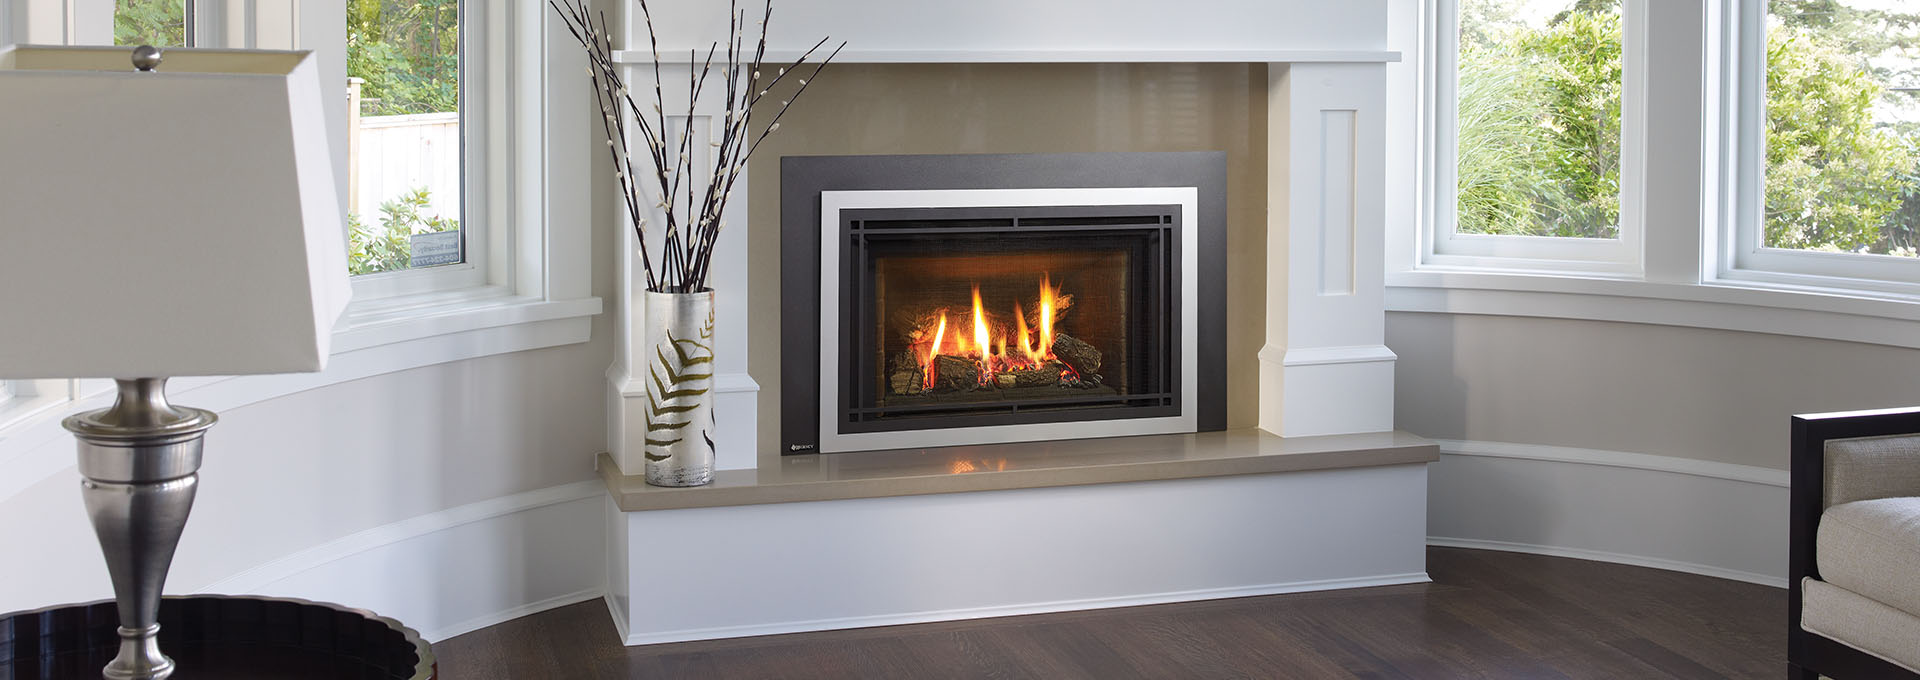 inserts home high hearth slim box gas fireplace product sutter panorama regency